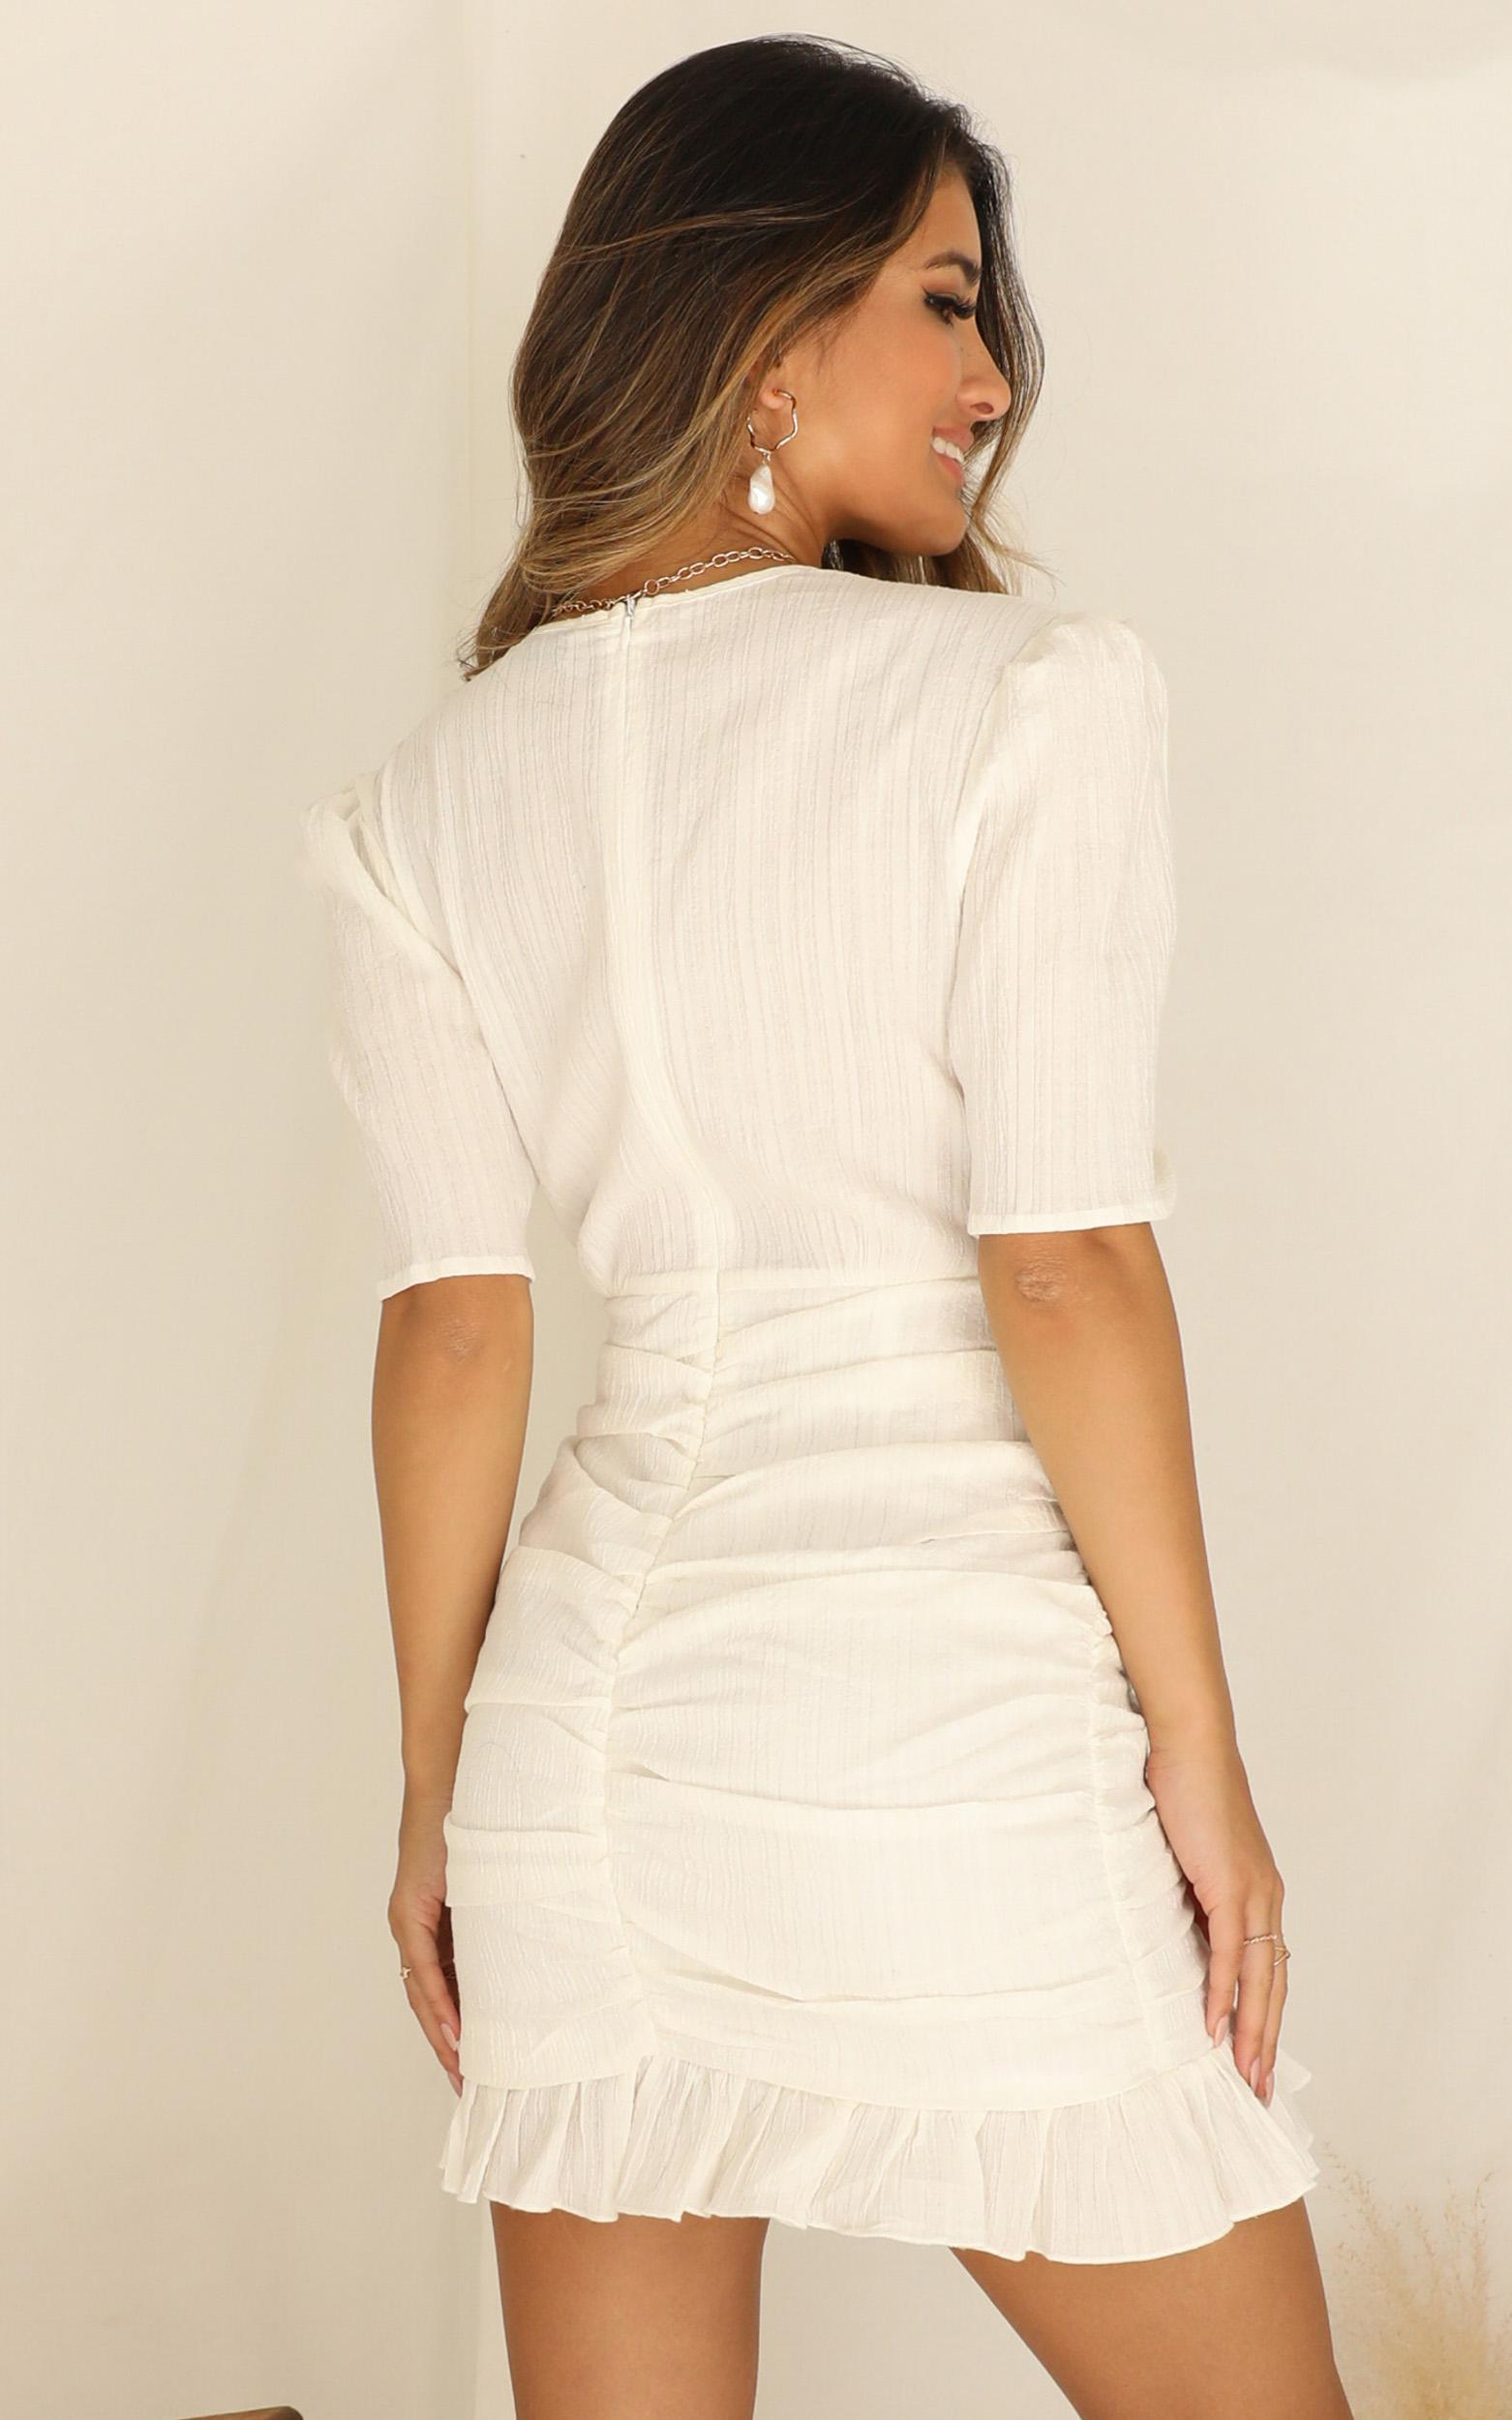 Lioness - Walking On Air Dress In White - 16 (XXL), White, hi-res image number null